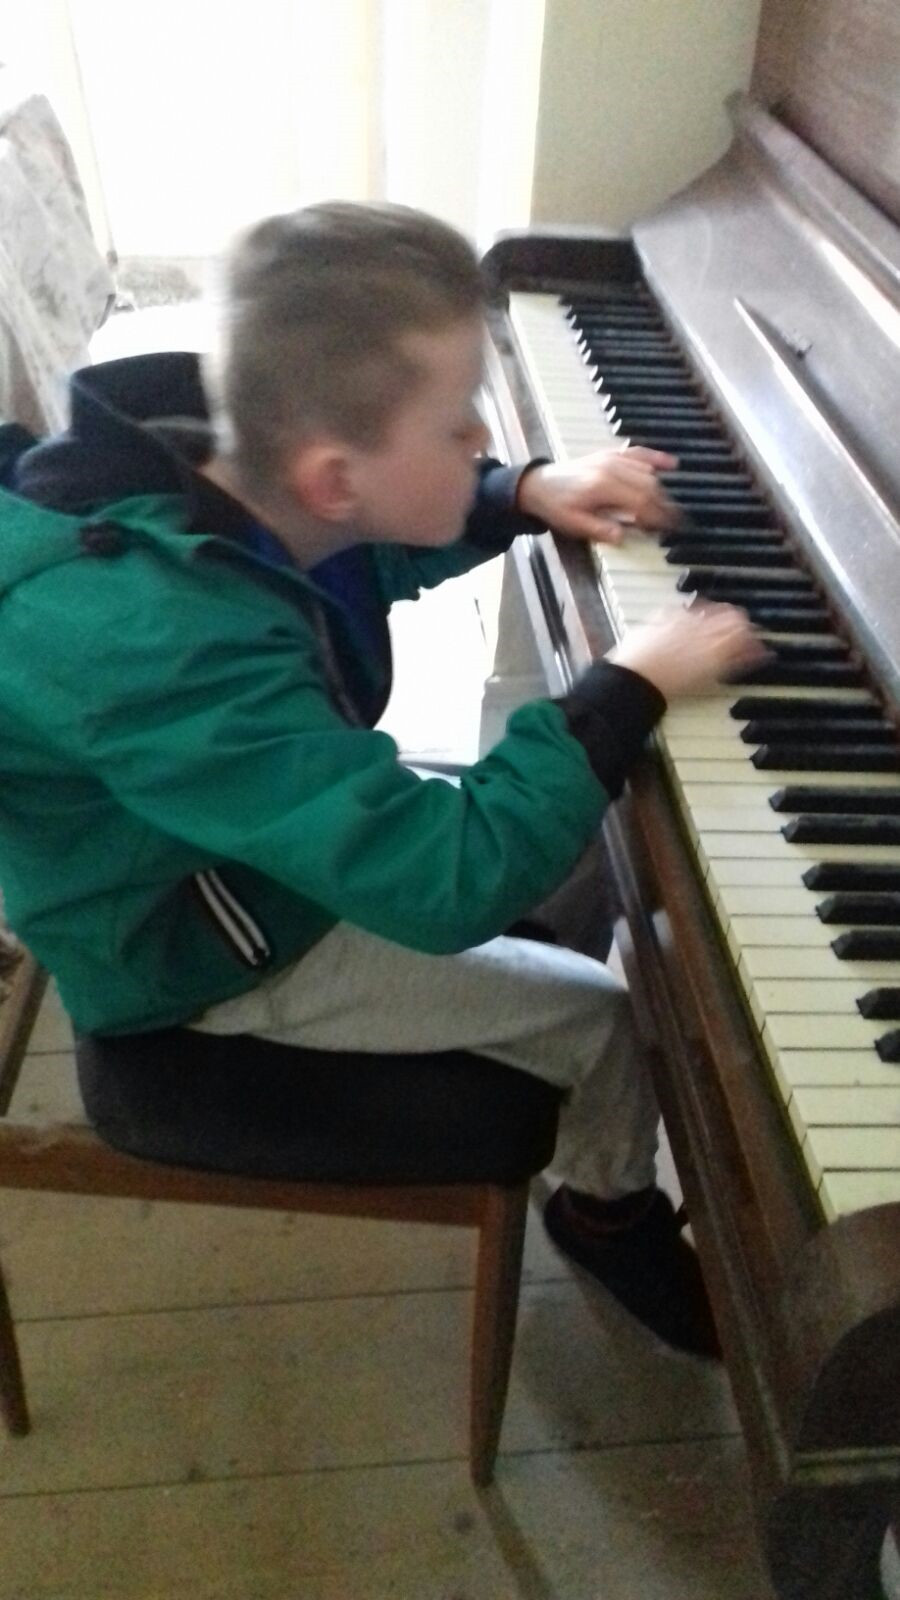 Tadhg playing the piano